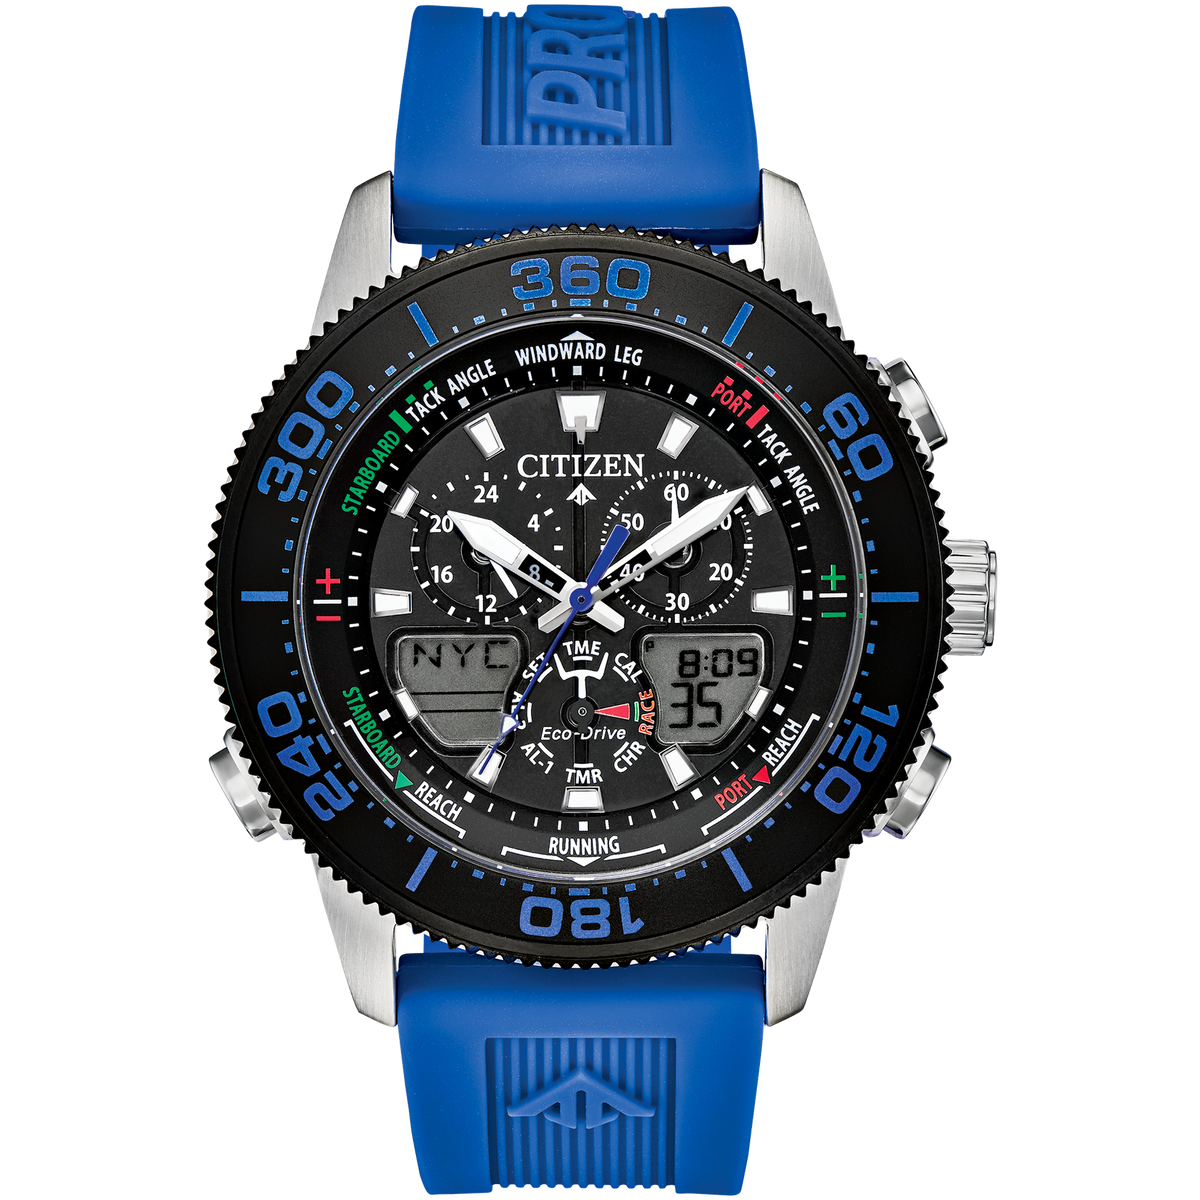 Citizen Eco-Drive - Promaster Sailhawk - Blue